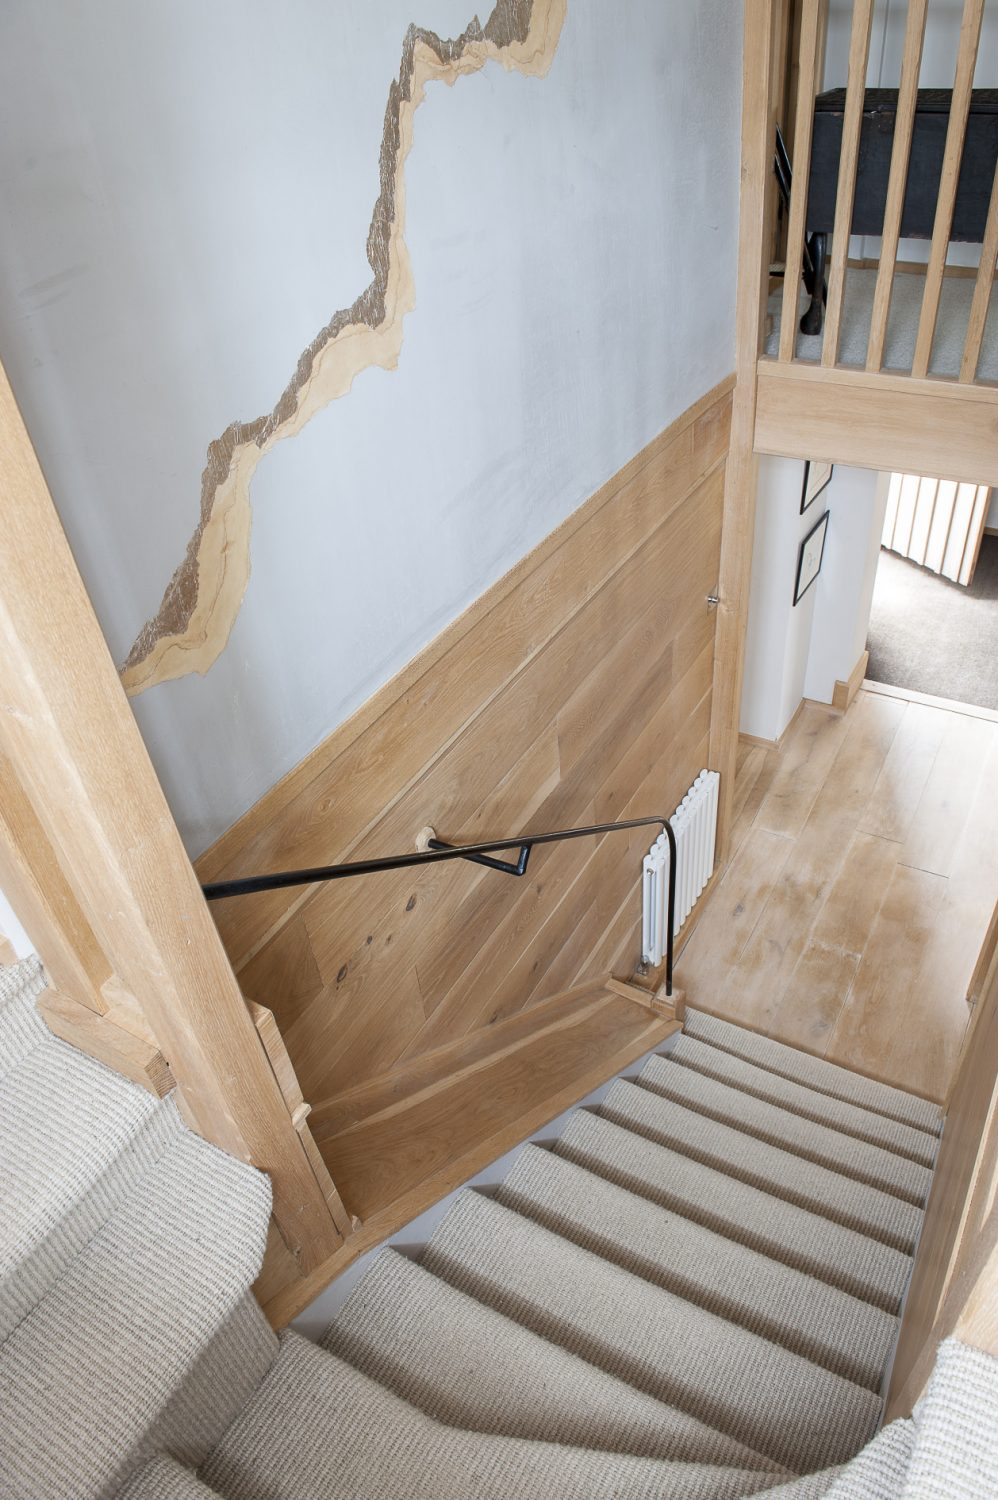 The staircase is far from what one might expect in a country cottage